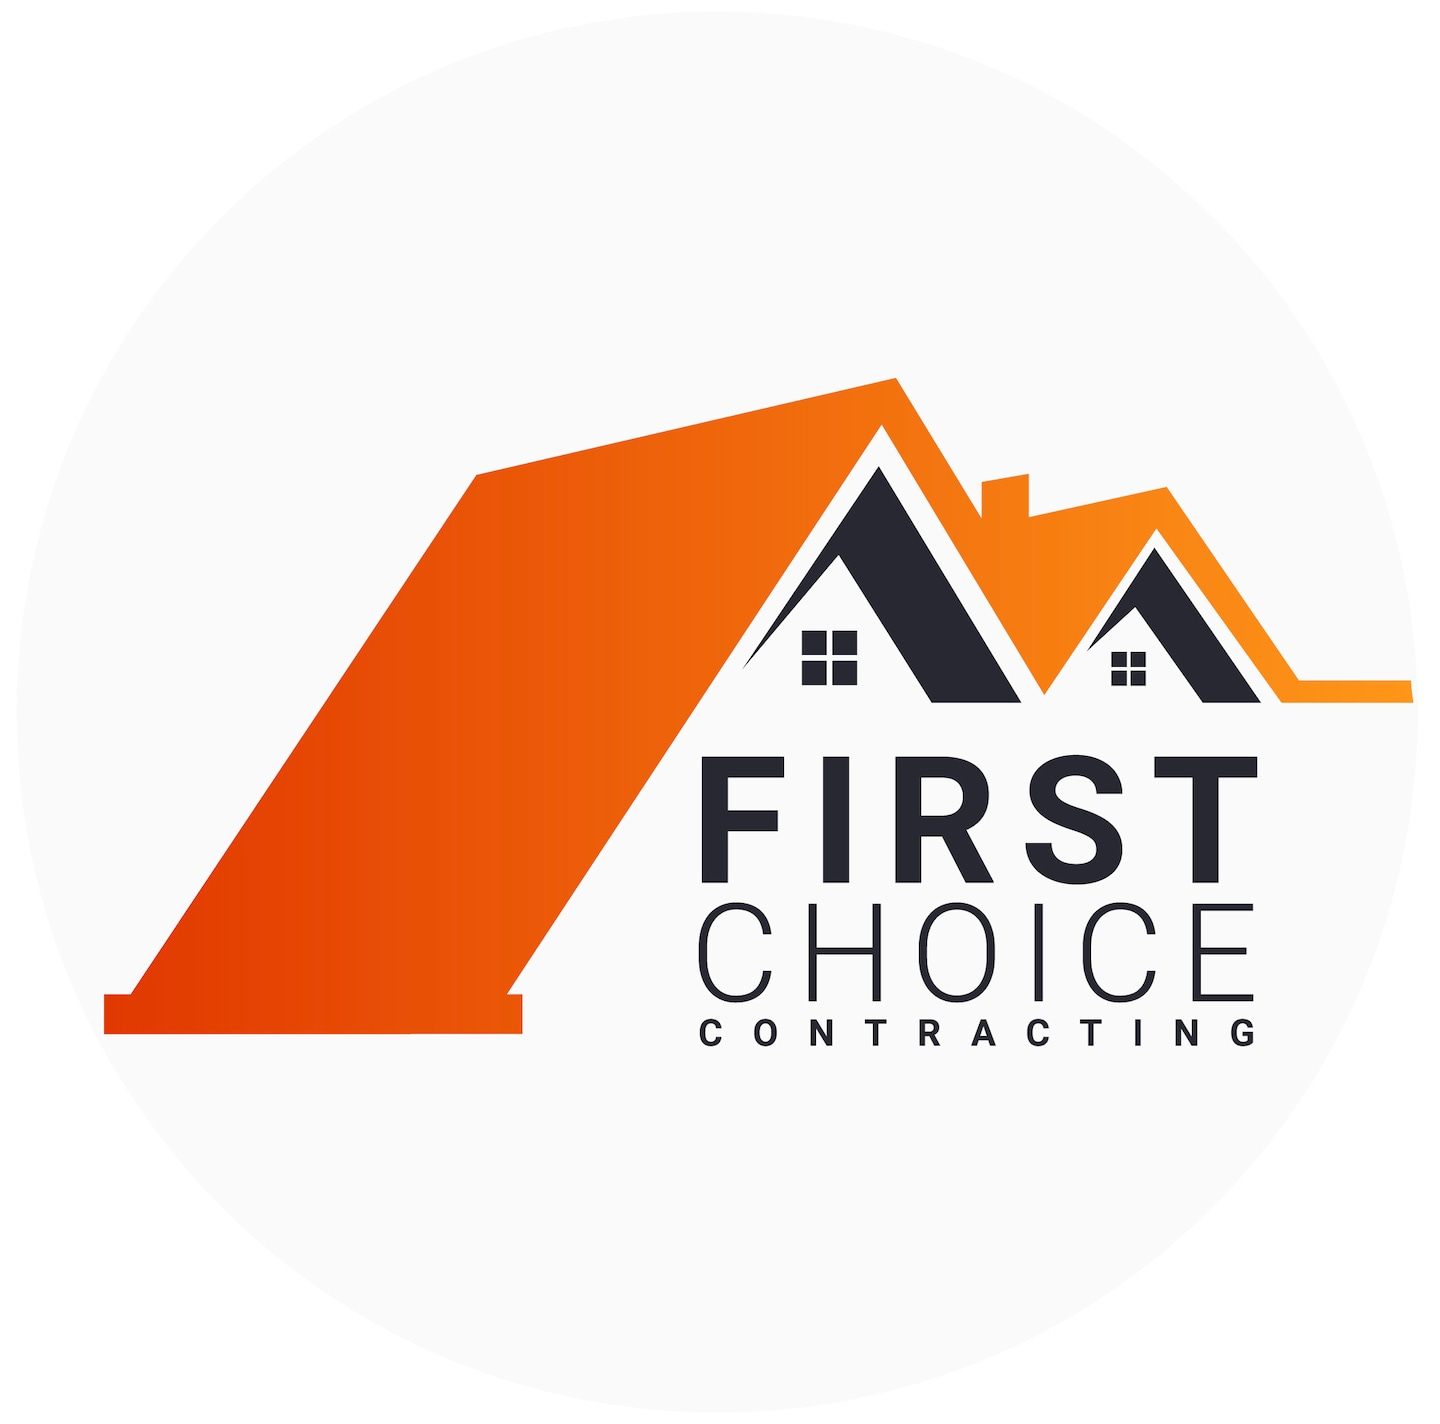 First Choice Contracting